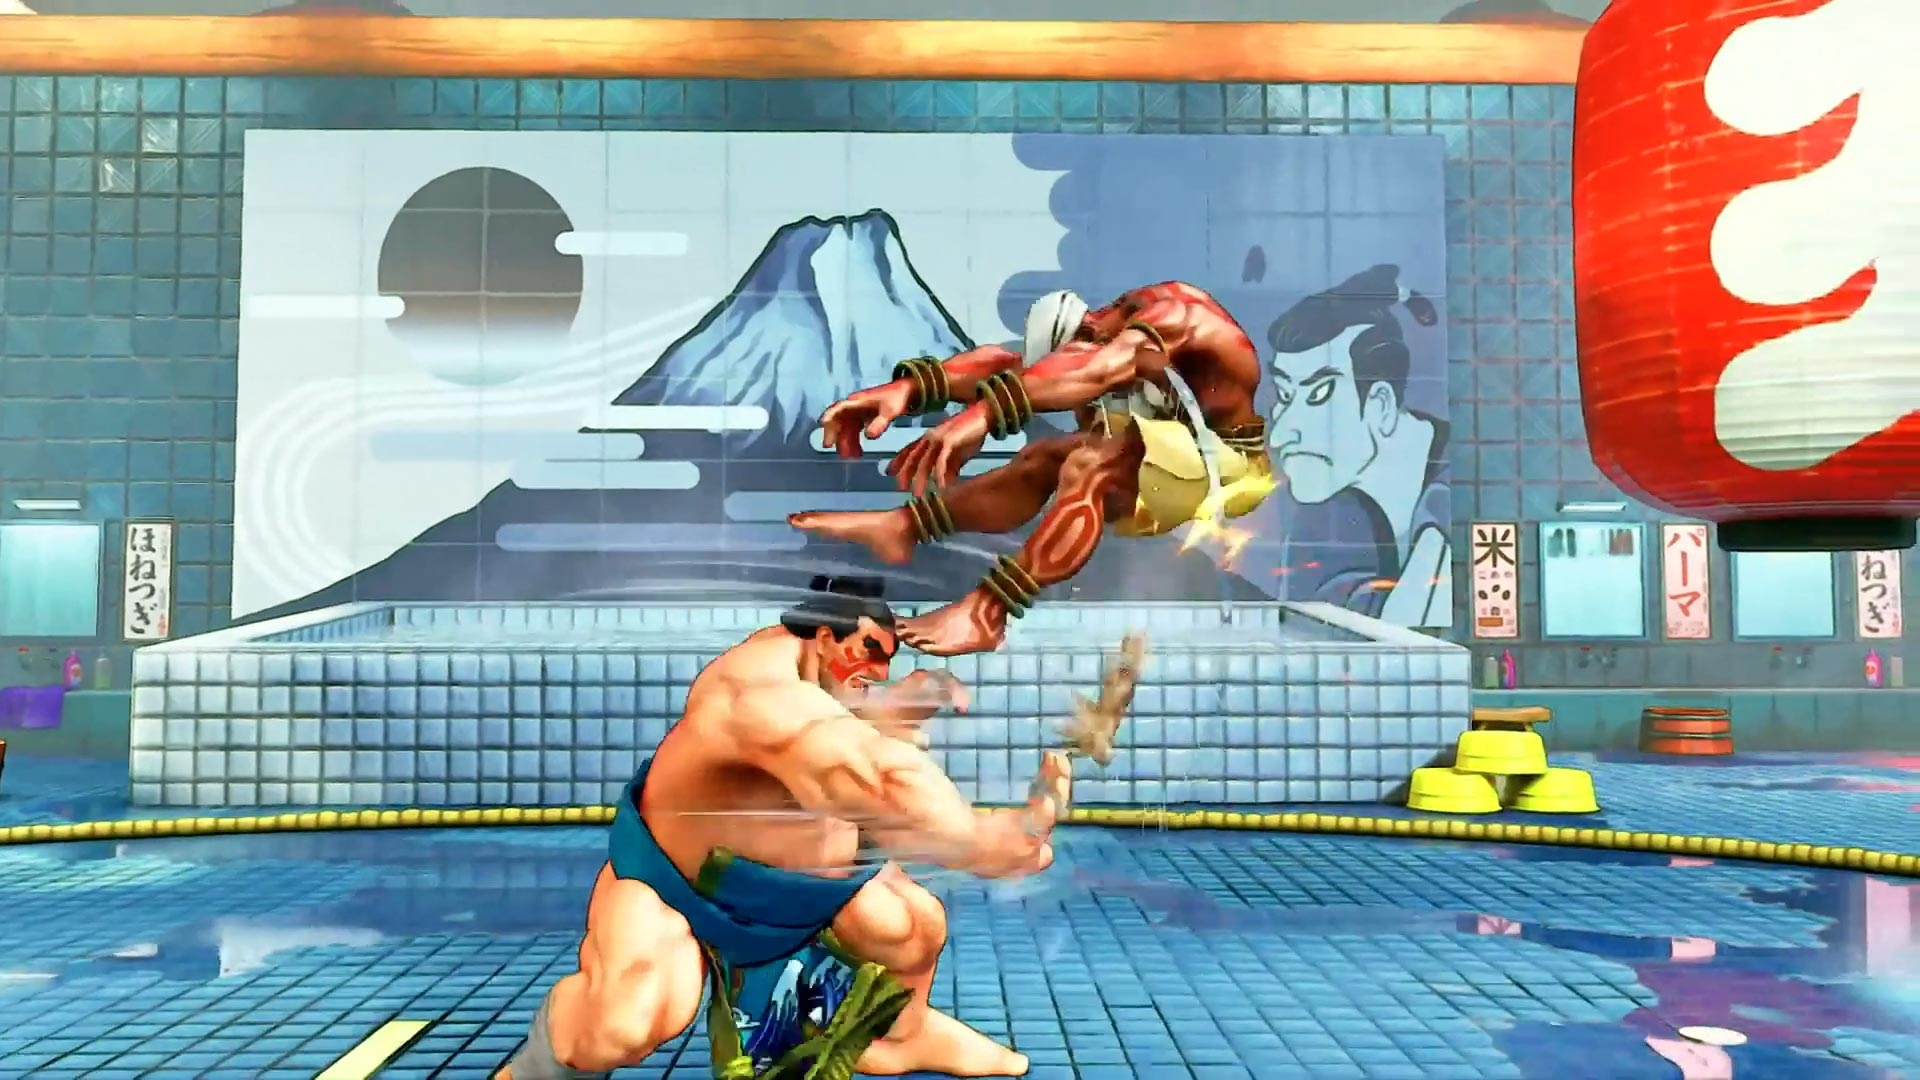 Street Fighter 5 leaked gallery of E. Honda, Lucia and Poison 15 out of 35 image gallery